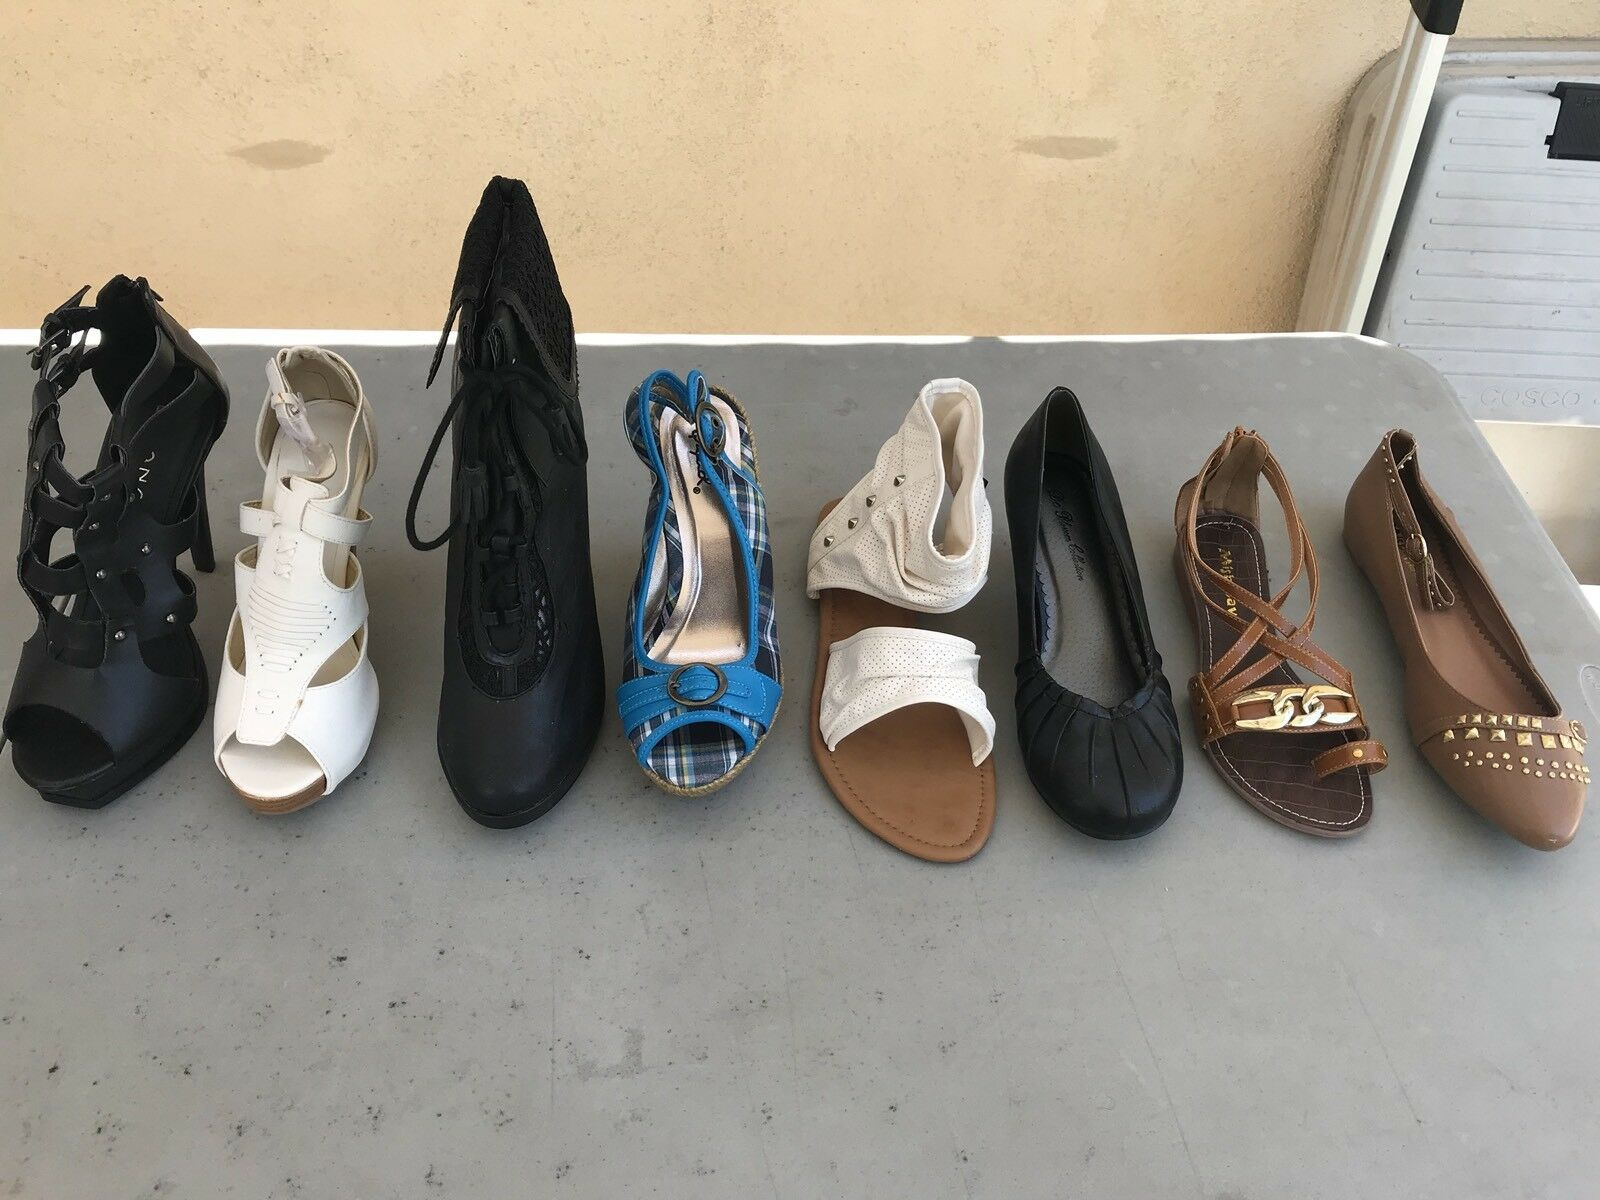 boots Wholesale Lot heels slippers sandals flats New 25 pairs women's shoes